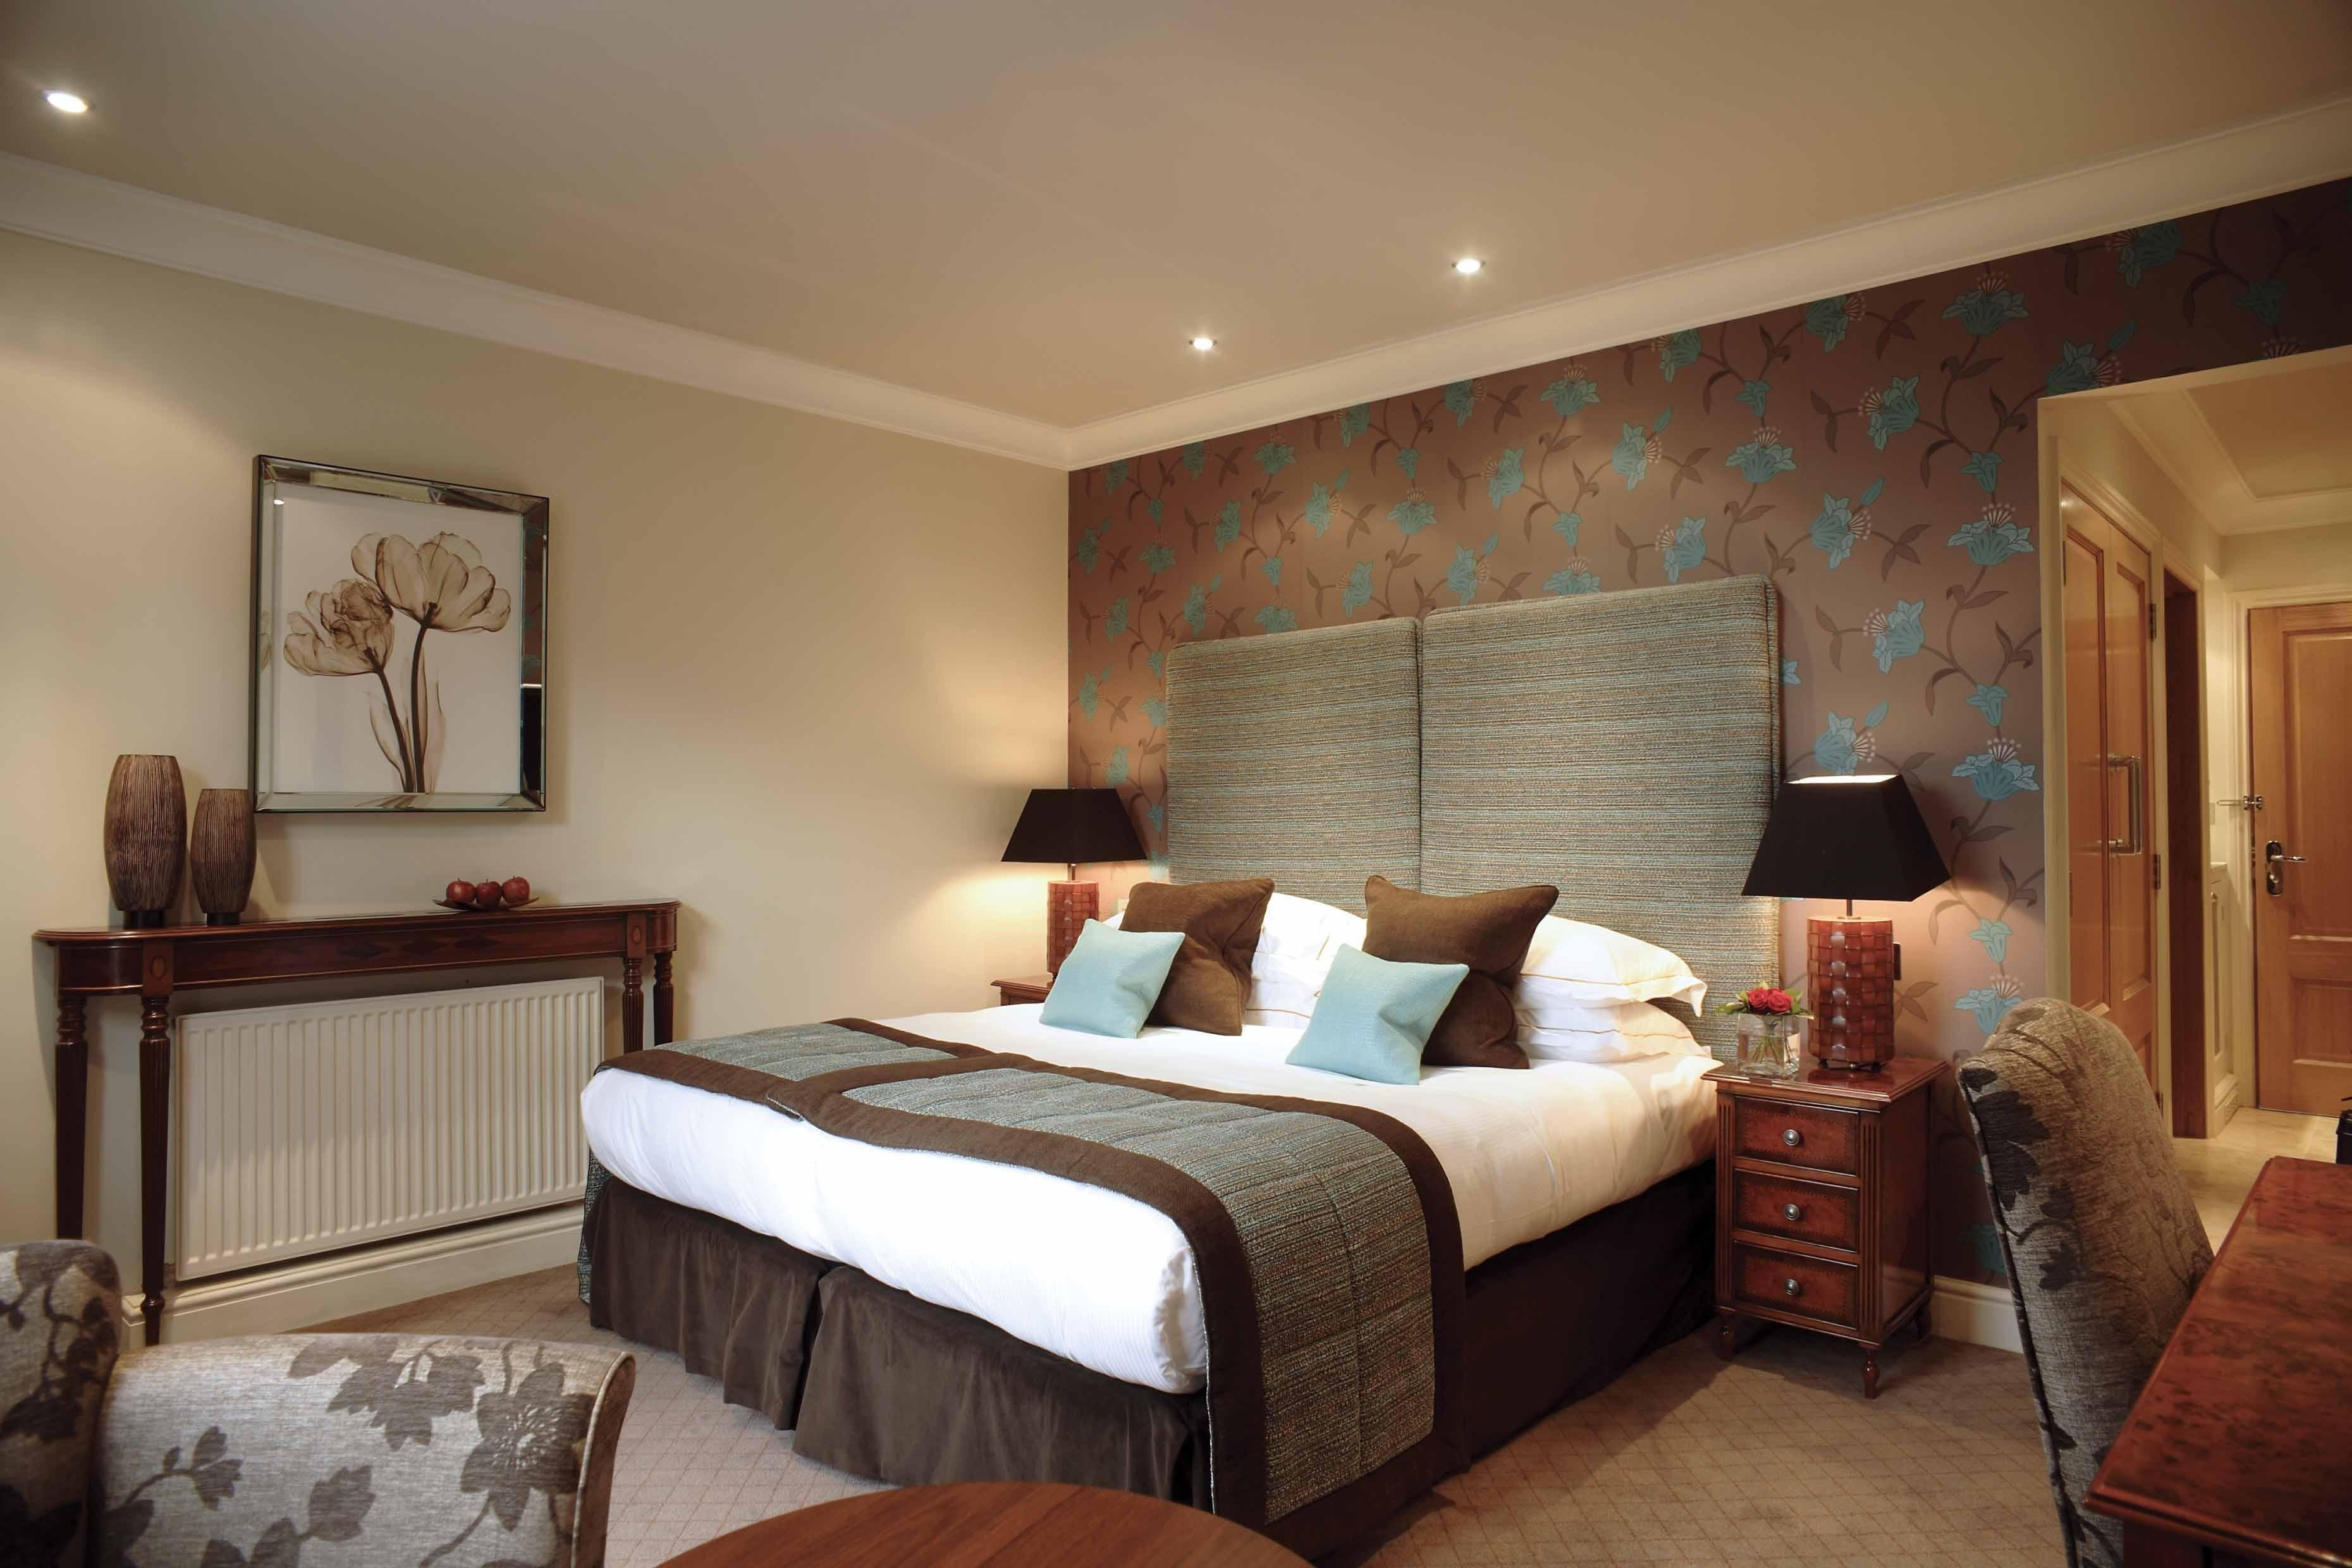 10 Most Popular Teal And Brown Bedroom Ideas modern teal bedroom ideas and pictures home designs brown idolza 2021